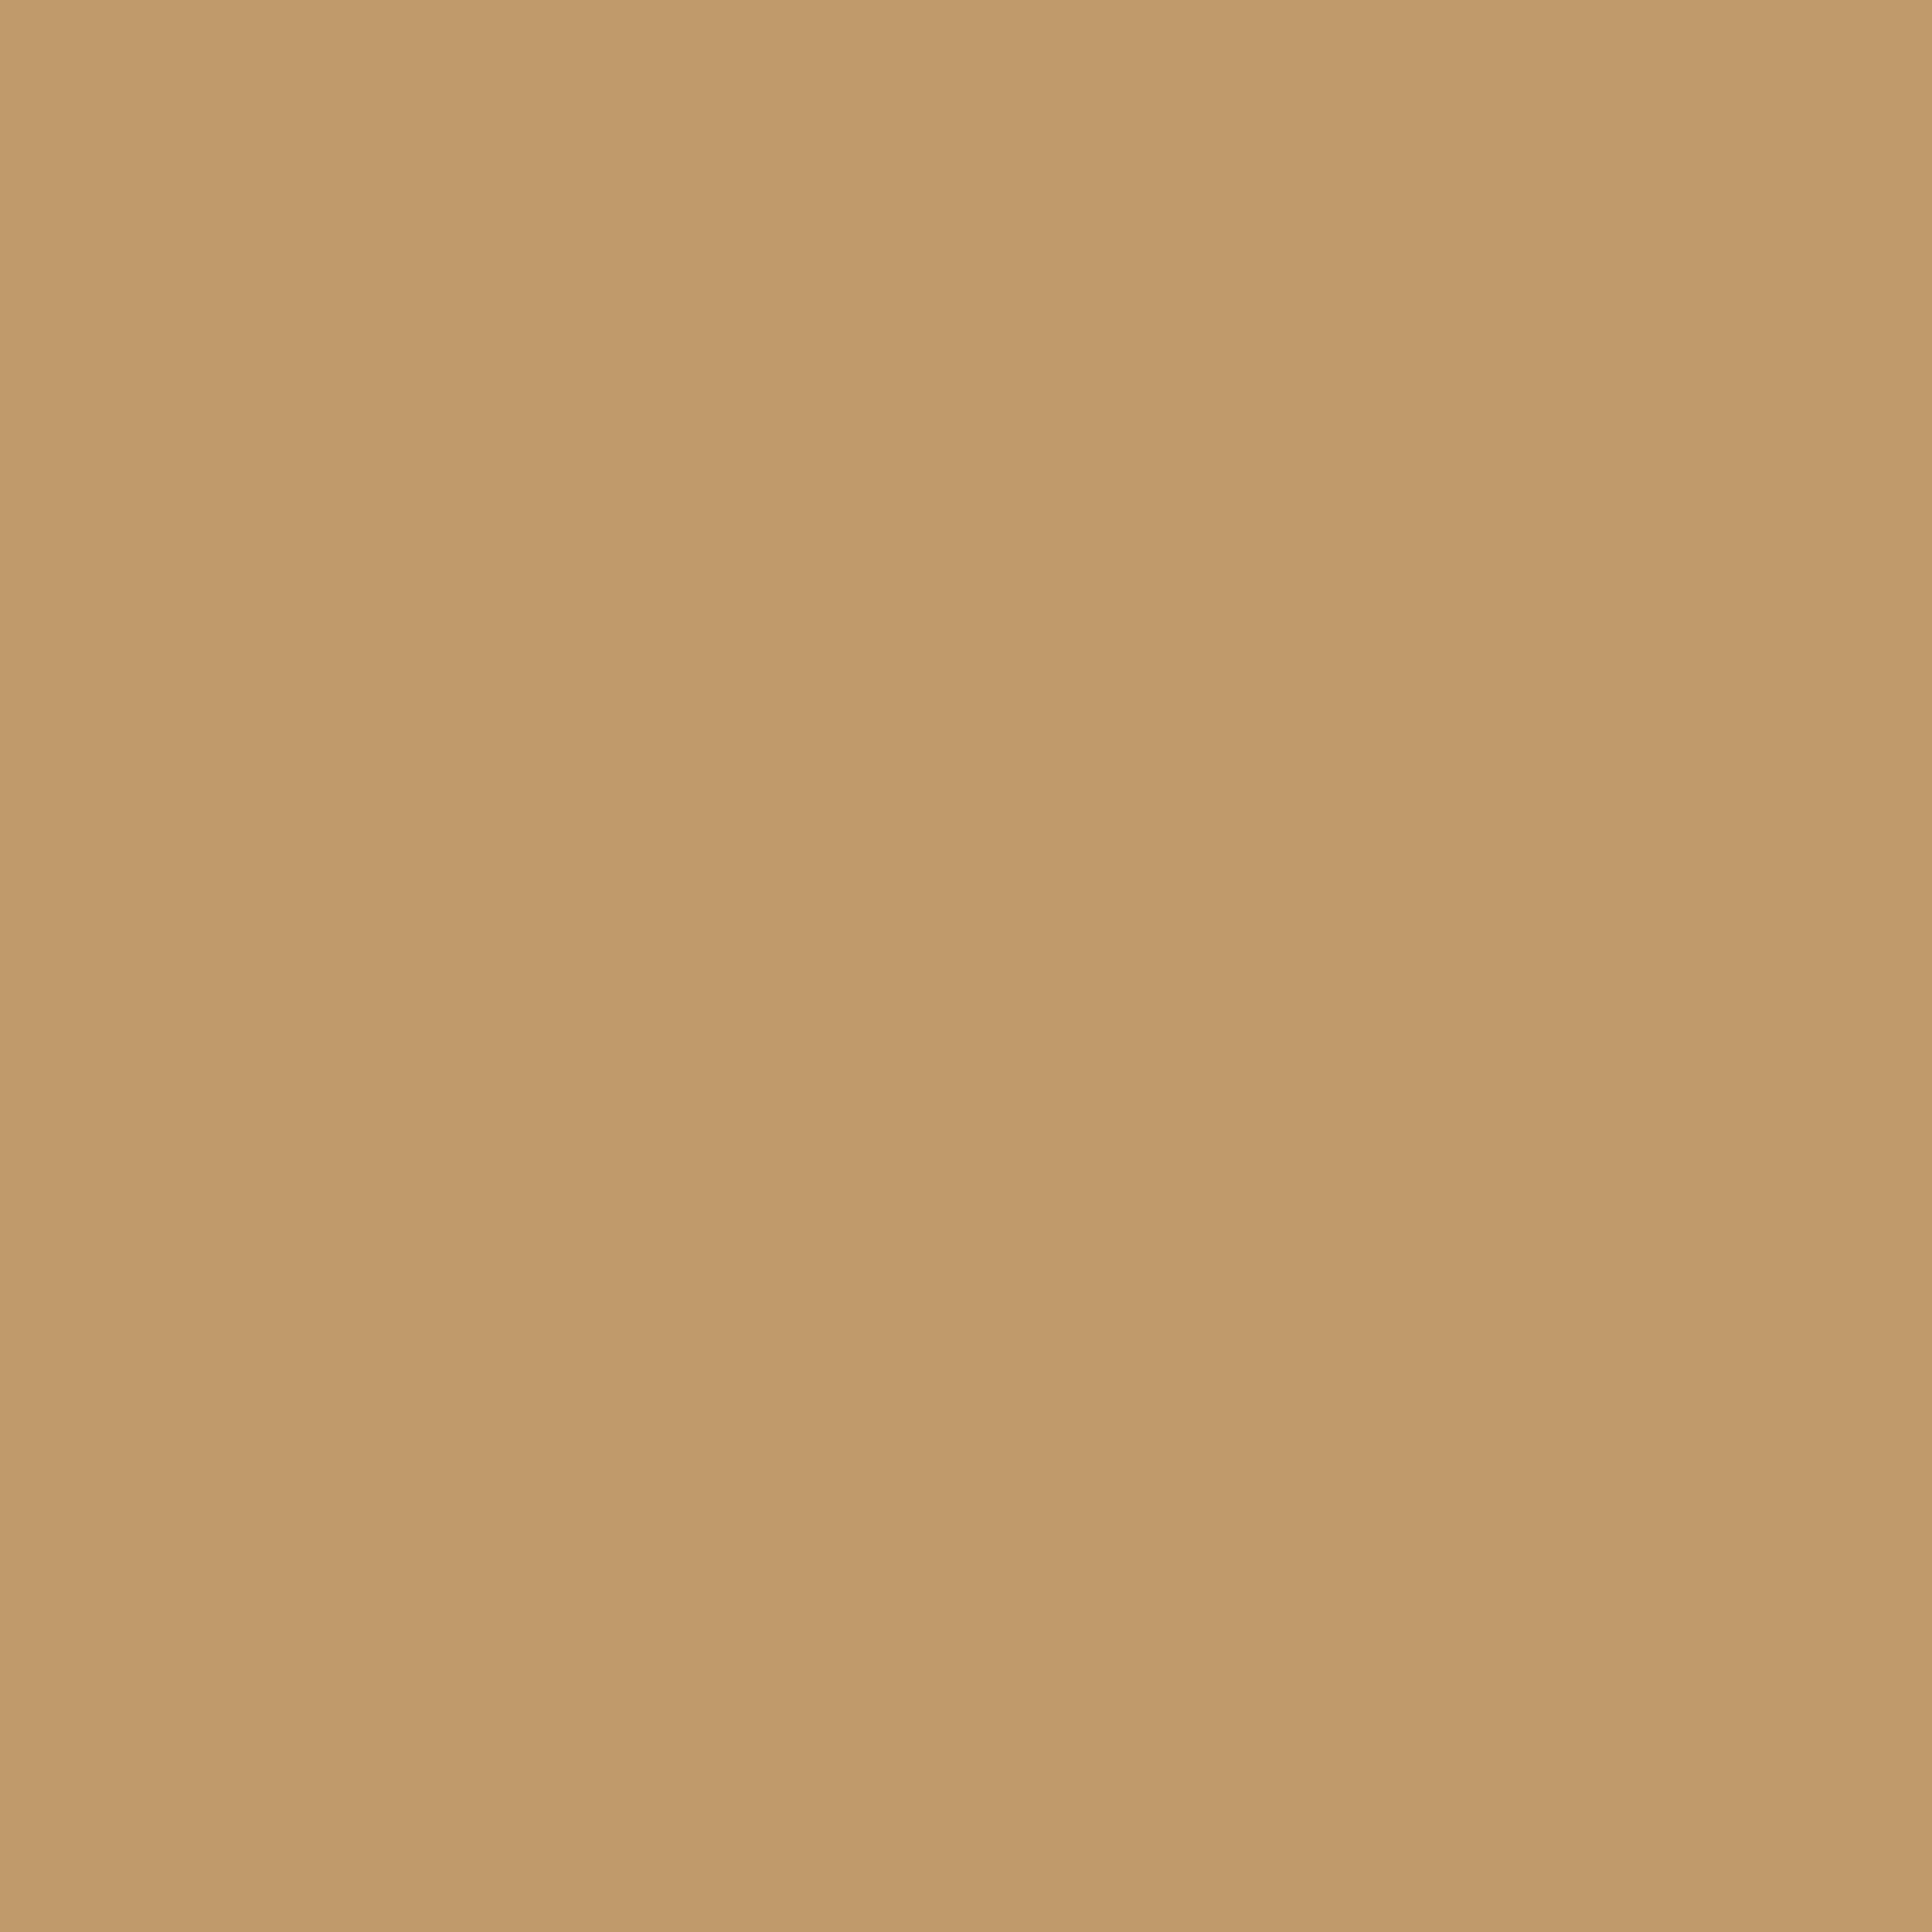 2048x2048 Wood Brown Solid Color Background